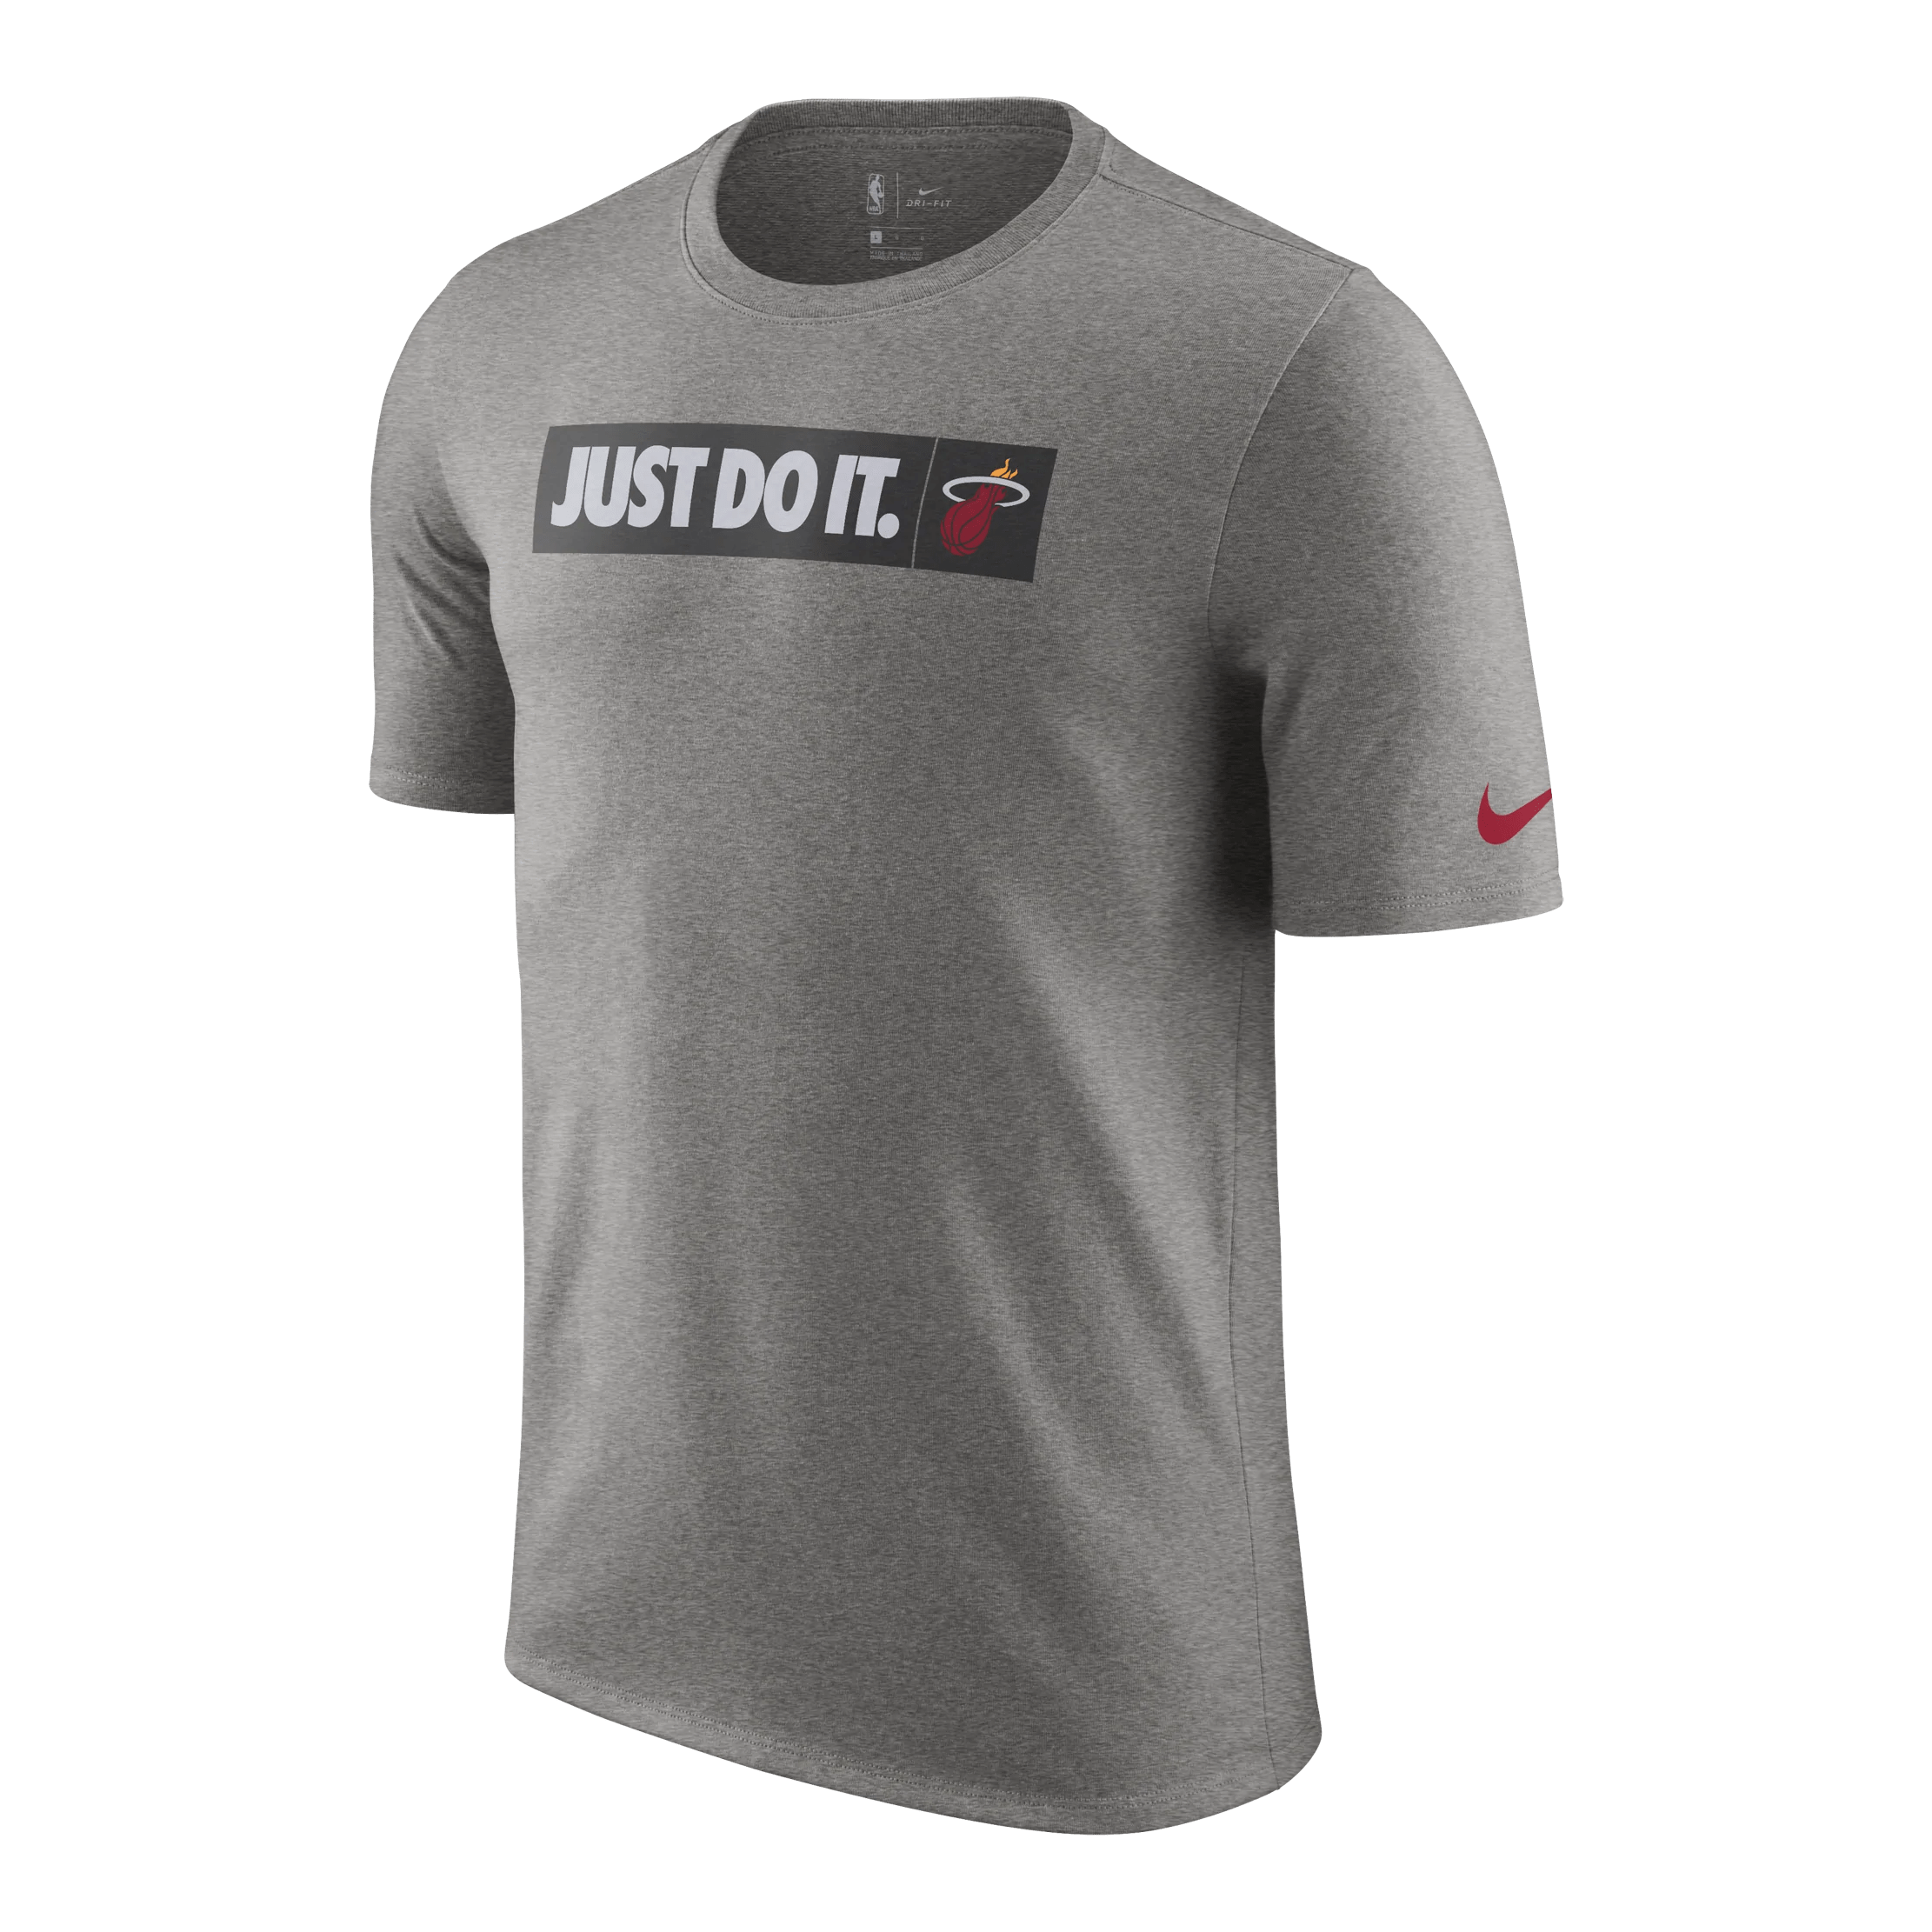 Nike Do Nike Miami Heat Youth Just Do It Grey Tee